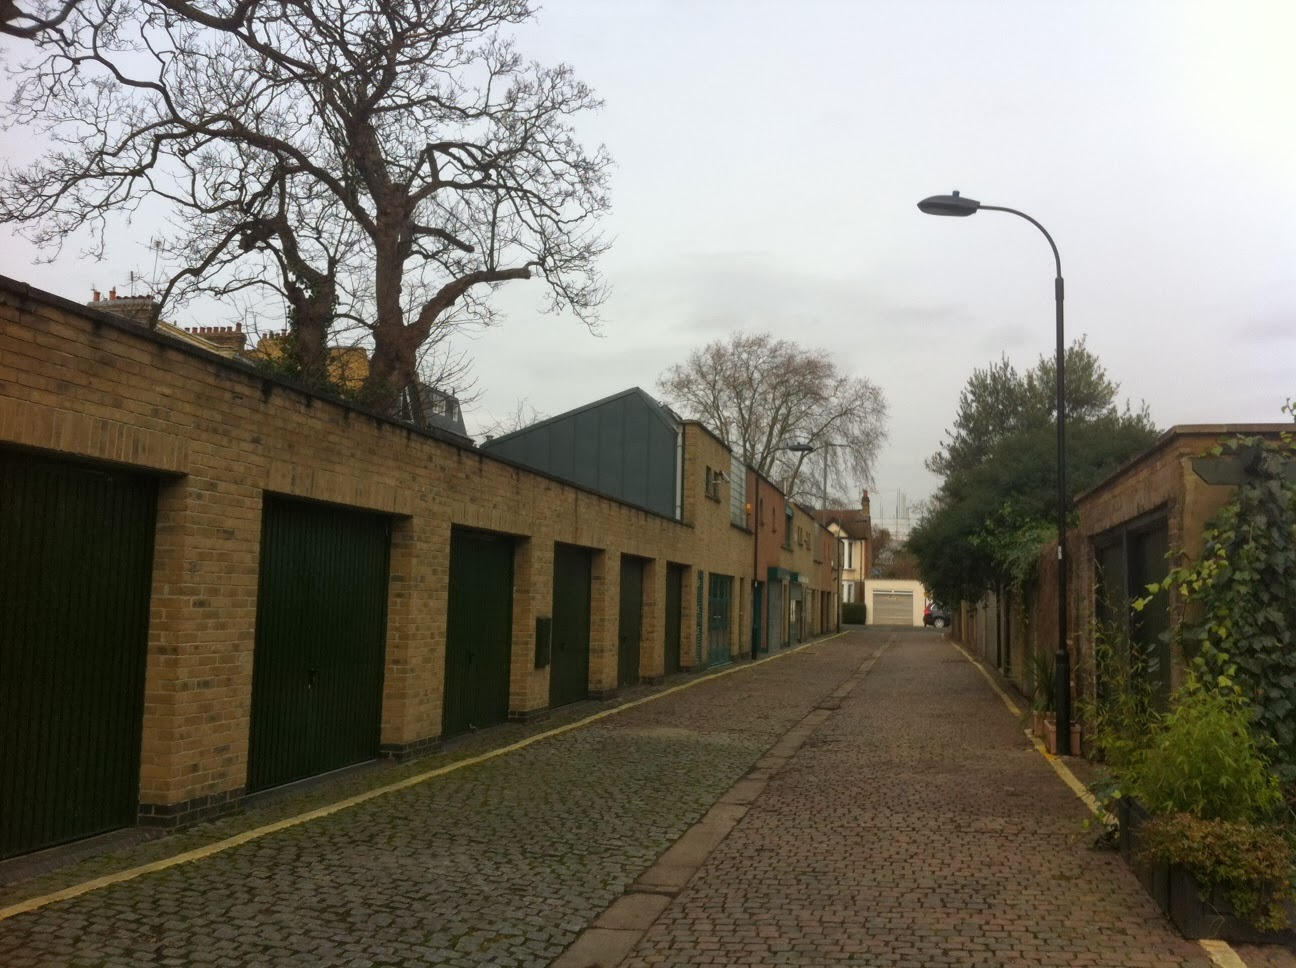 Astrop Mews, Hammersmith, London W6